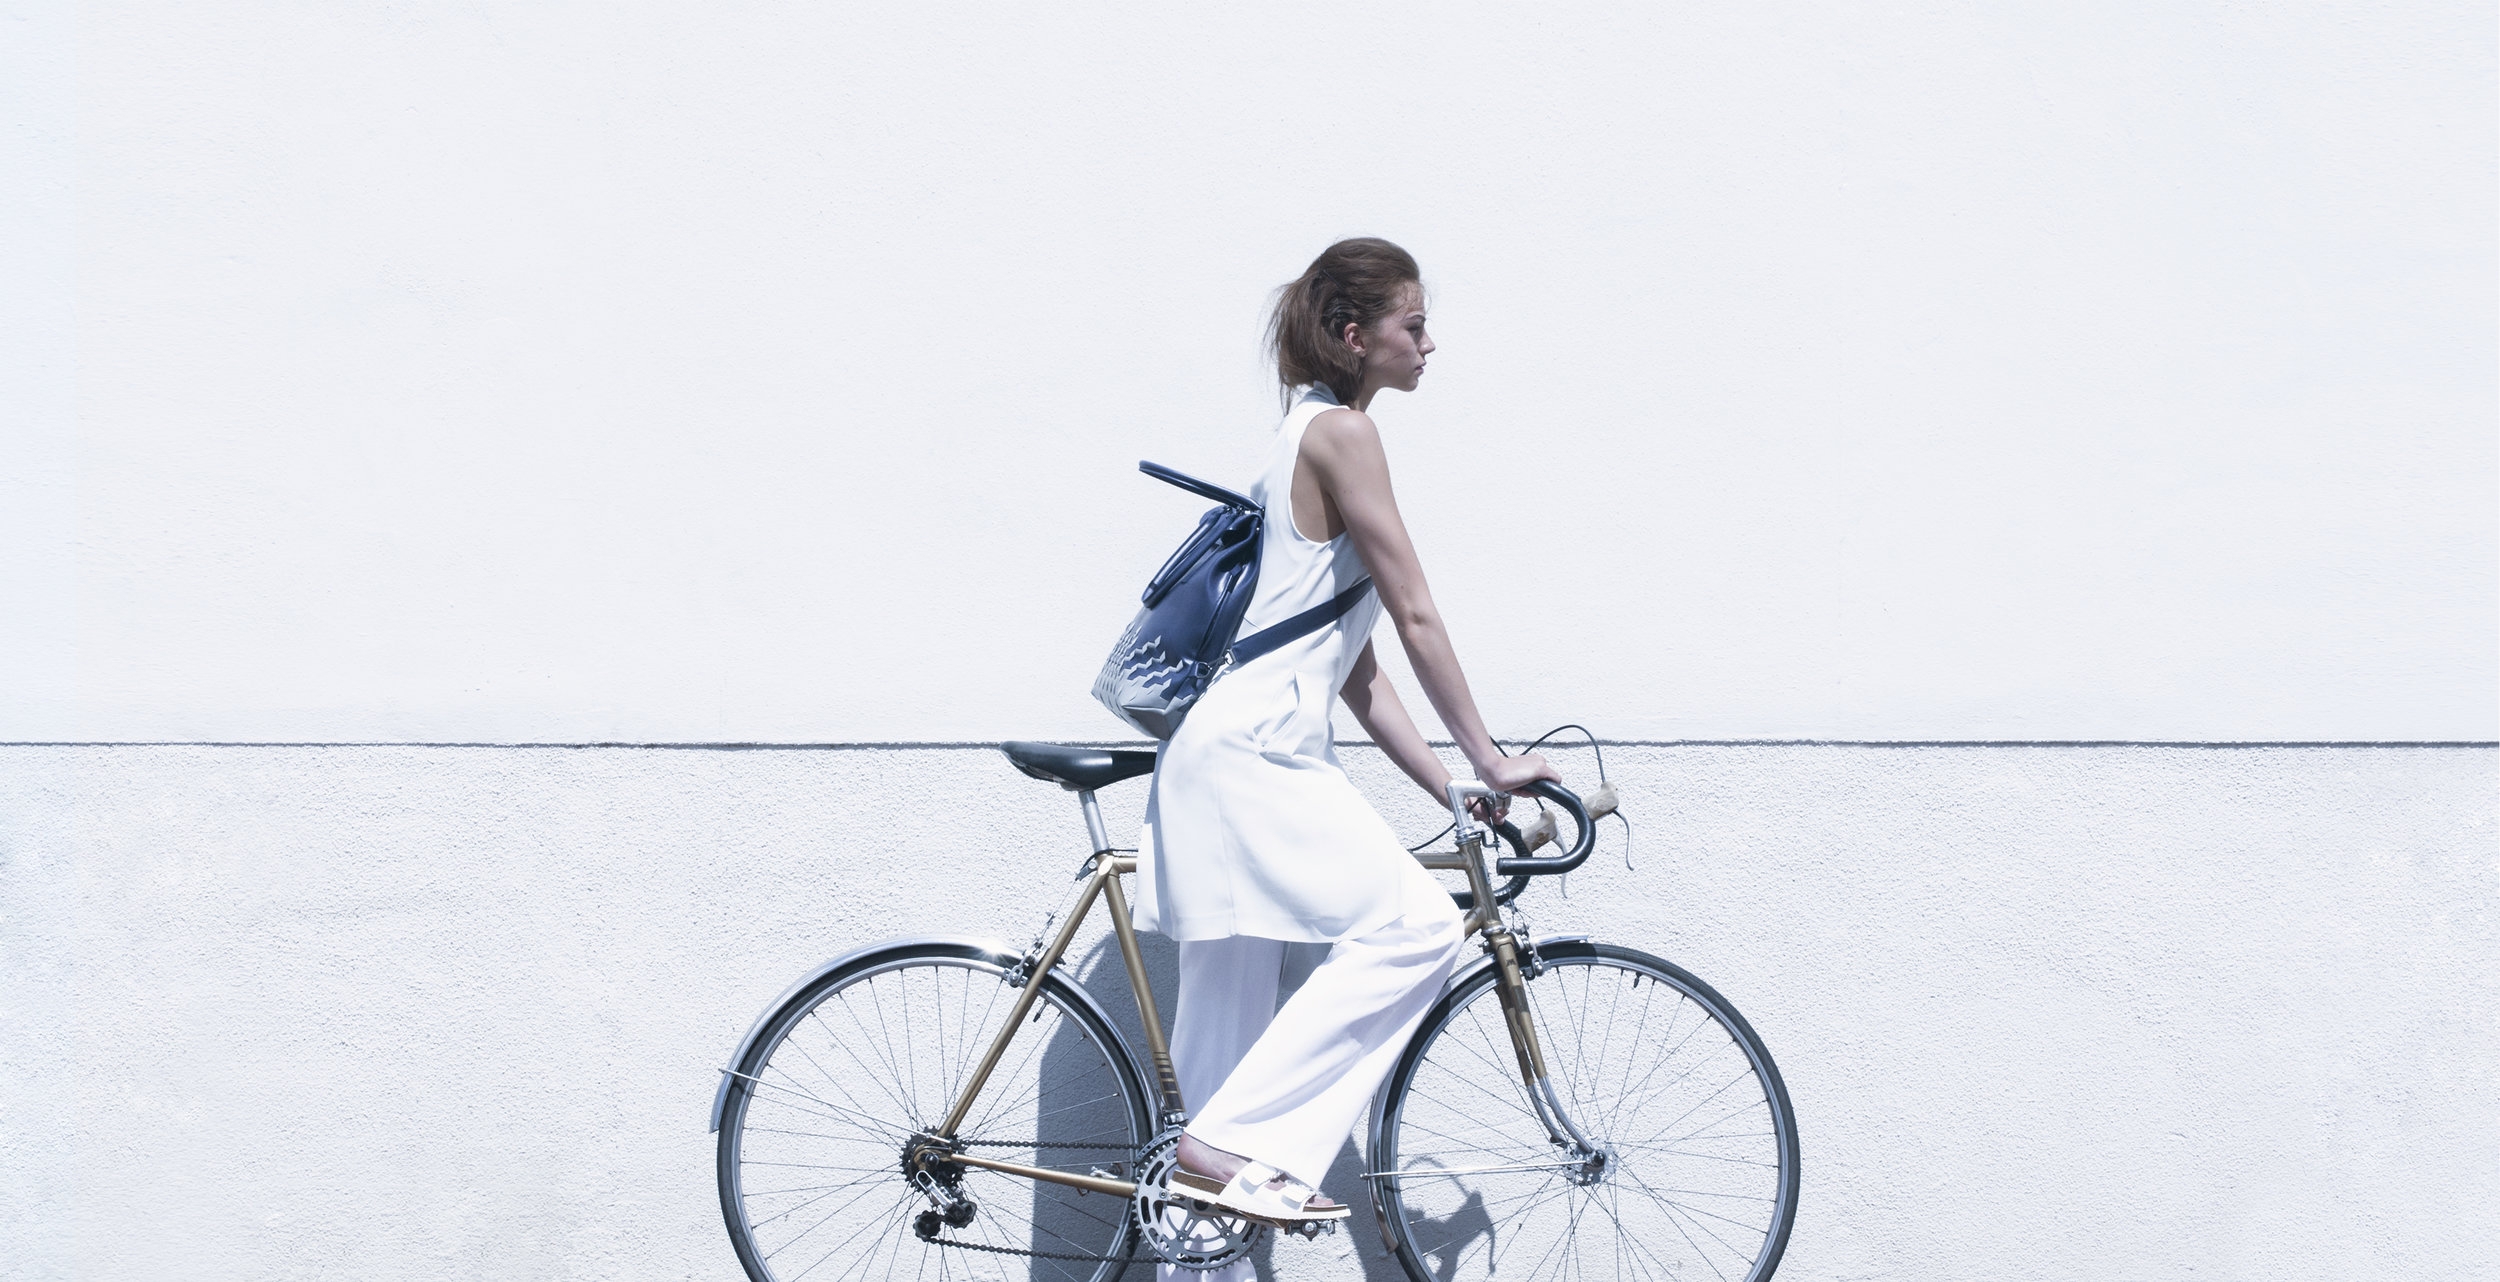 The cyclist_collection1_penelope02.jpg